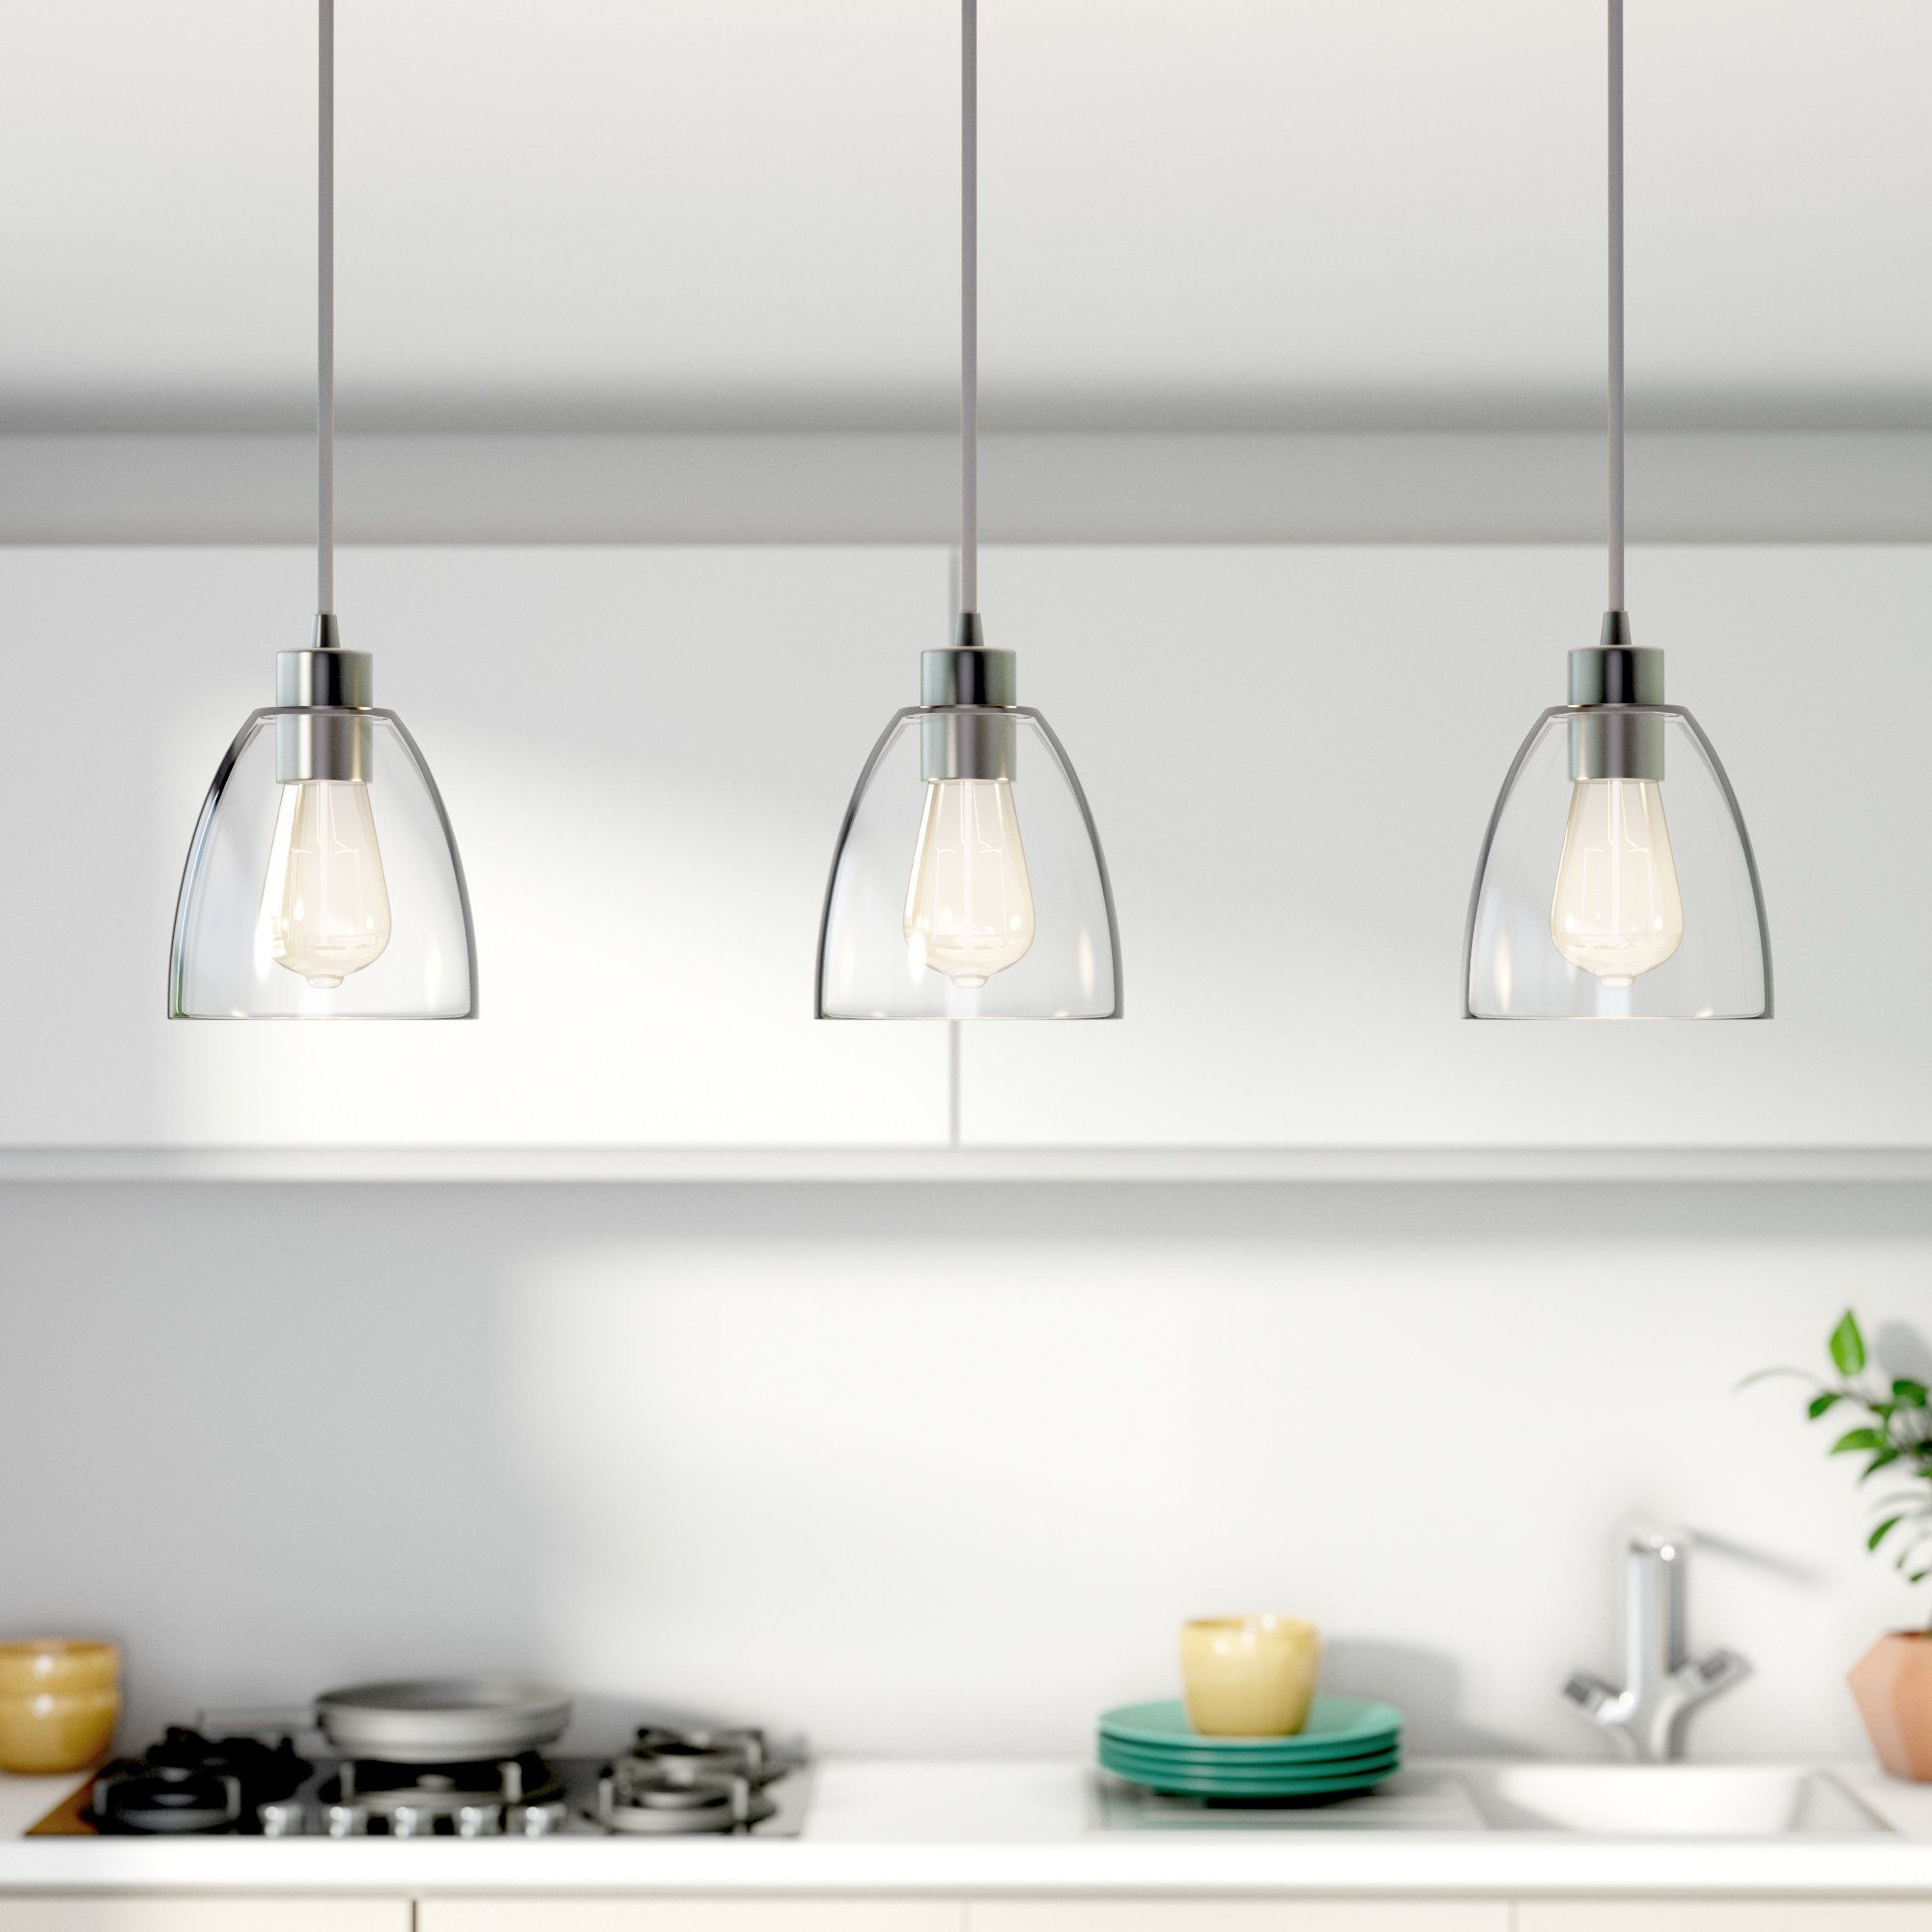 Cadorette 3-Light Kitchen Island Pendant